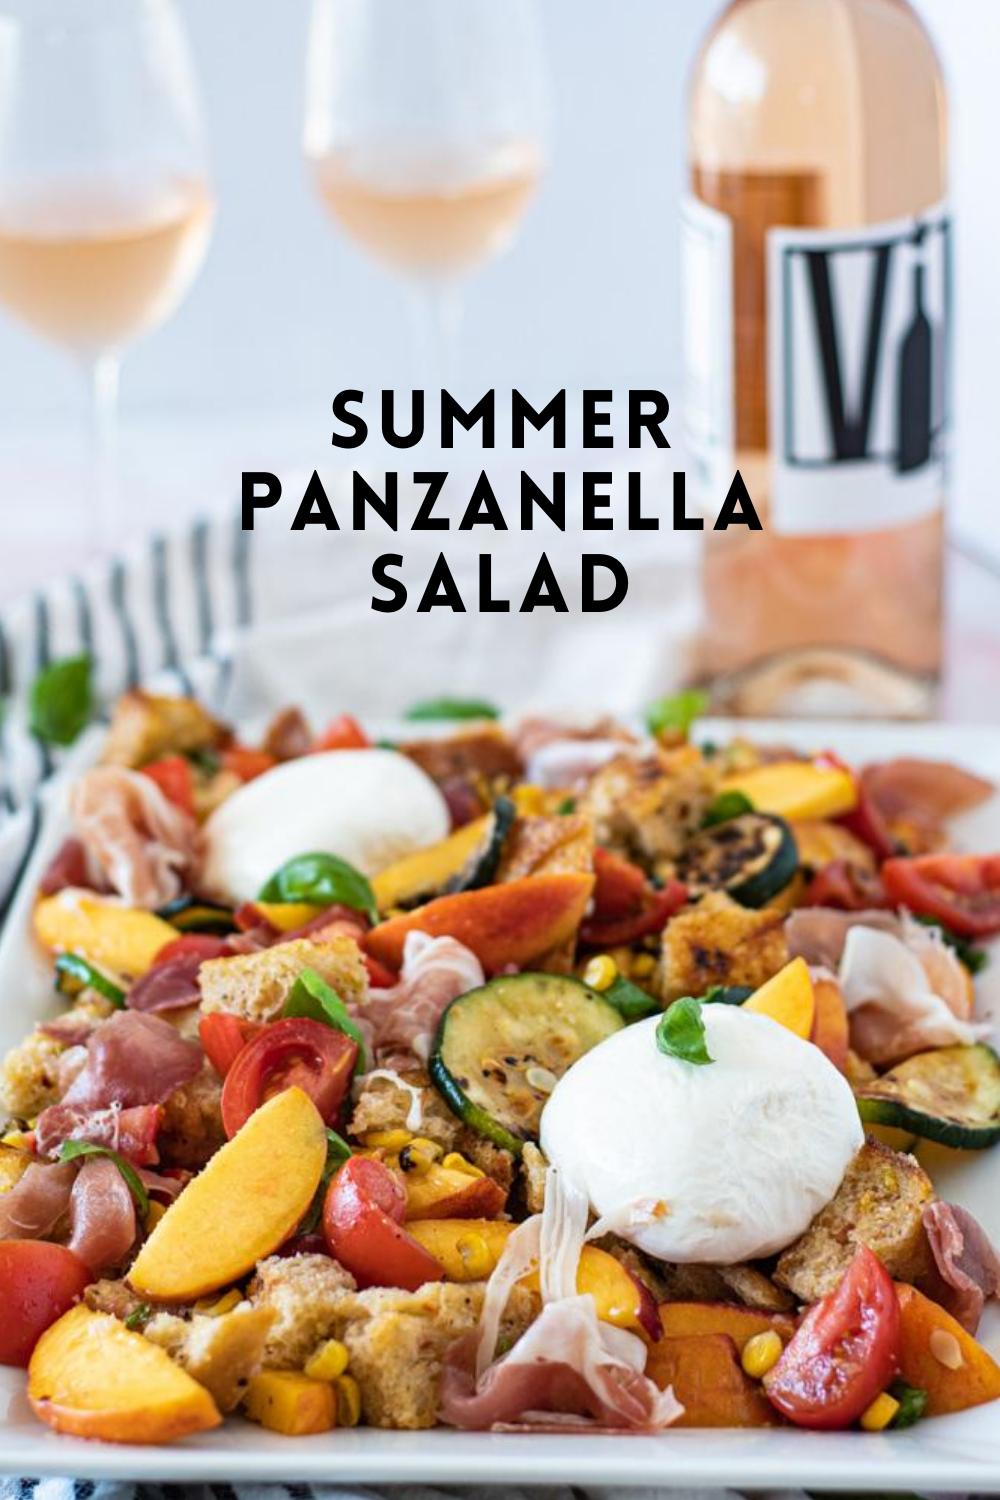 Summer Panzanella Salad with Homemade Croutons- The Seasonal Junkie- The Seasonal Junkie